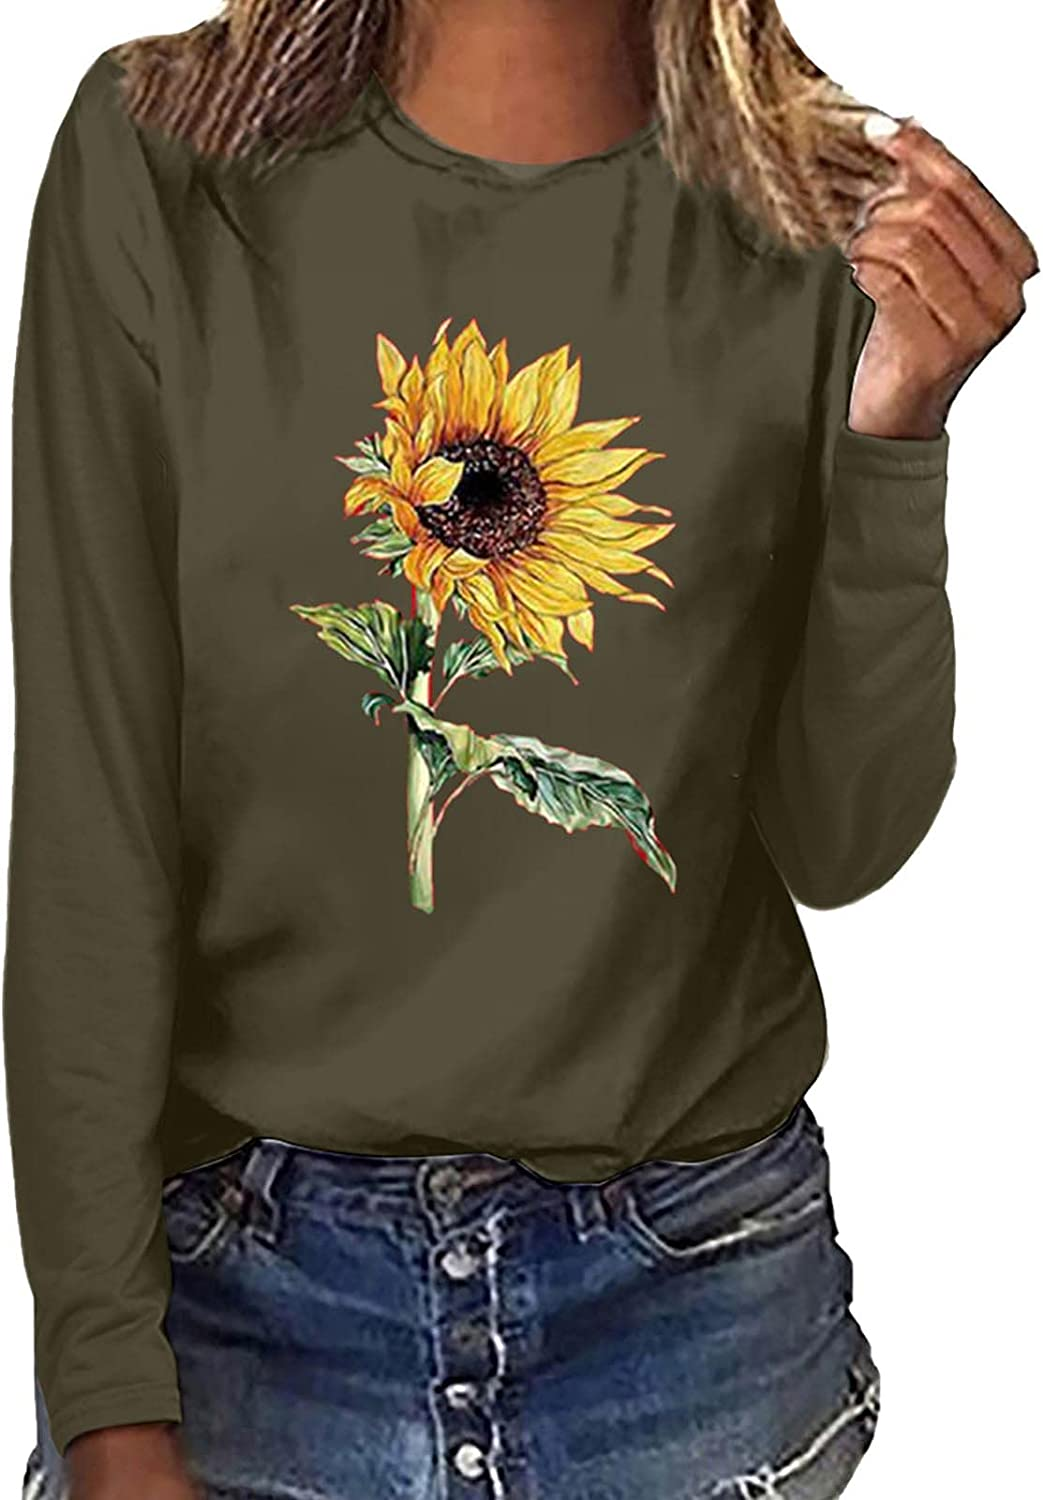 Women's Long Sleeve Tshirts Casual Sunflower Printing Graphics Tee Tops Loose Pullover Sweatshirt Blouse